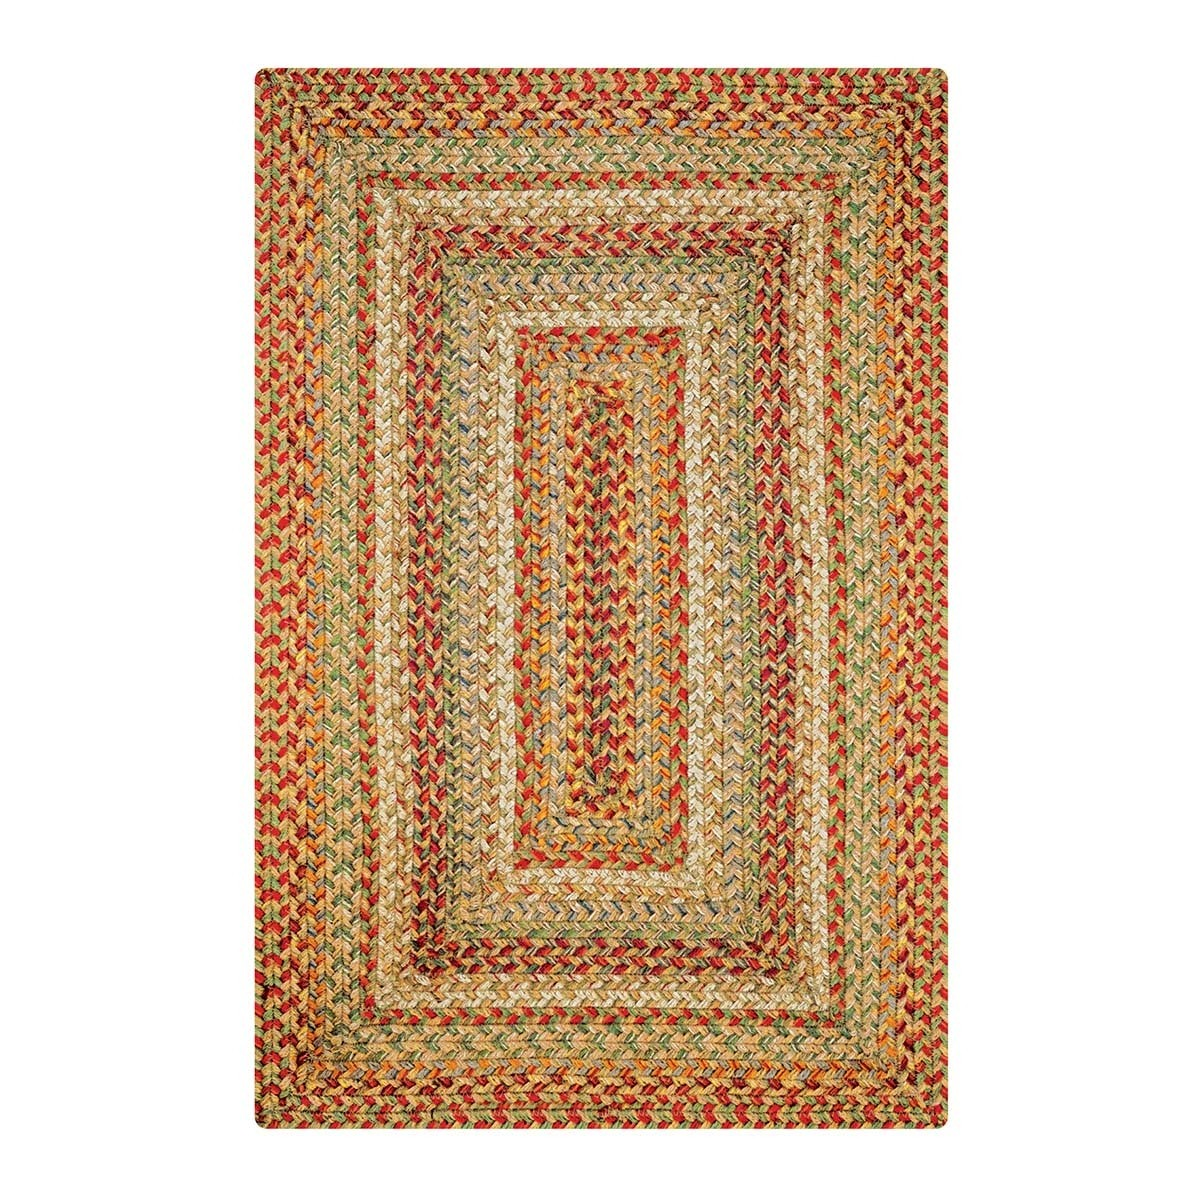 Buy Harvest Beige Jute Braided Rugs Online Homespice